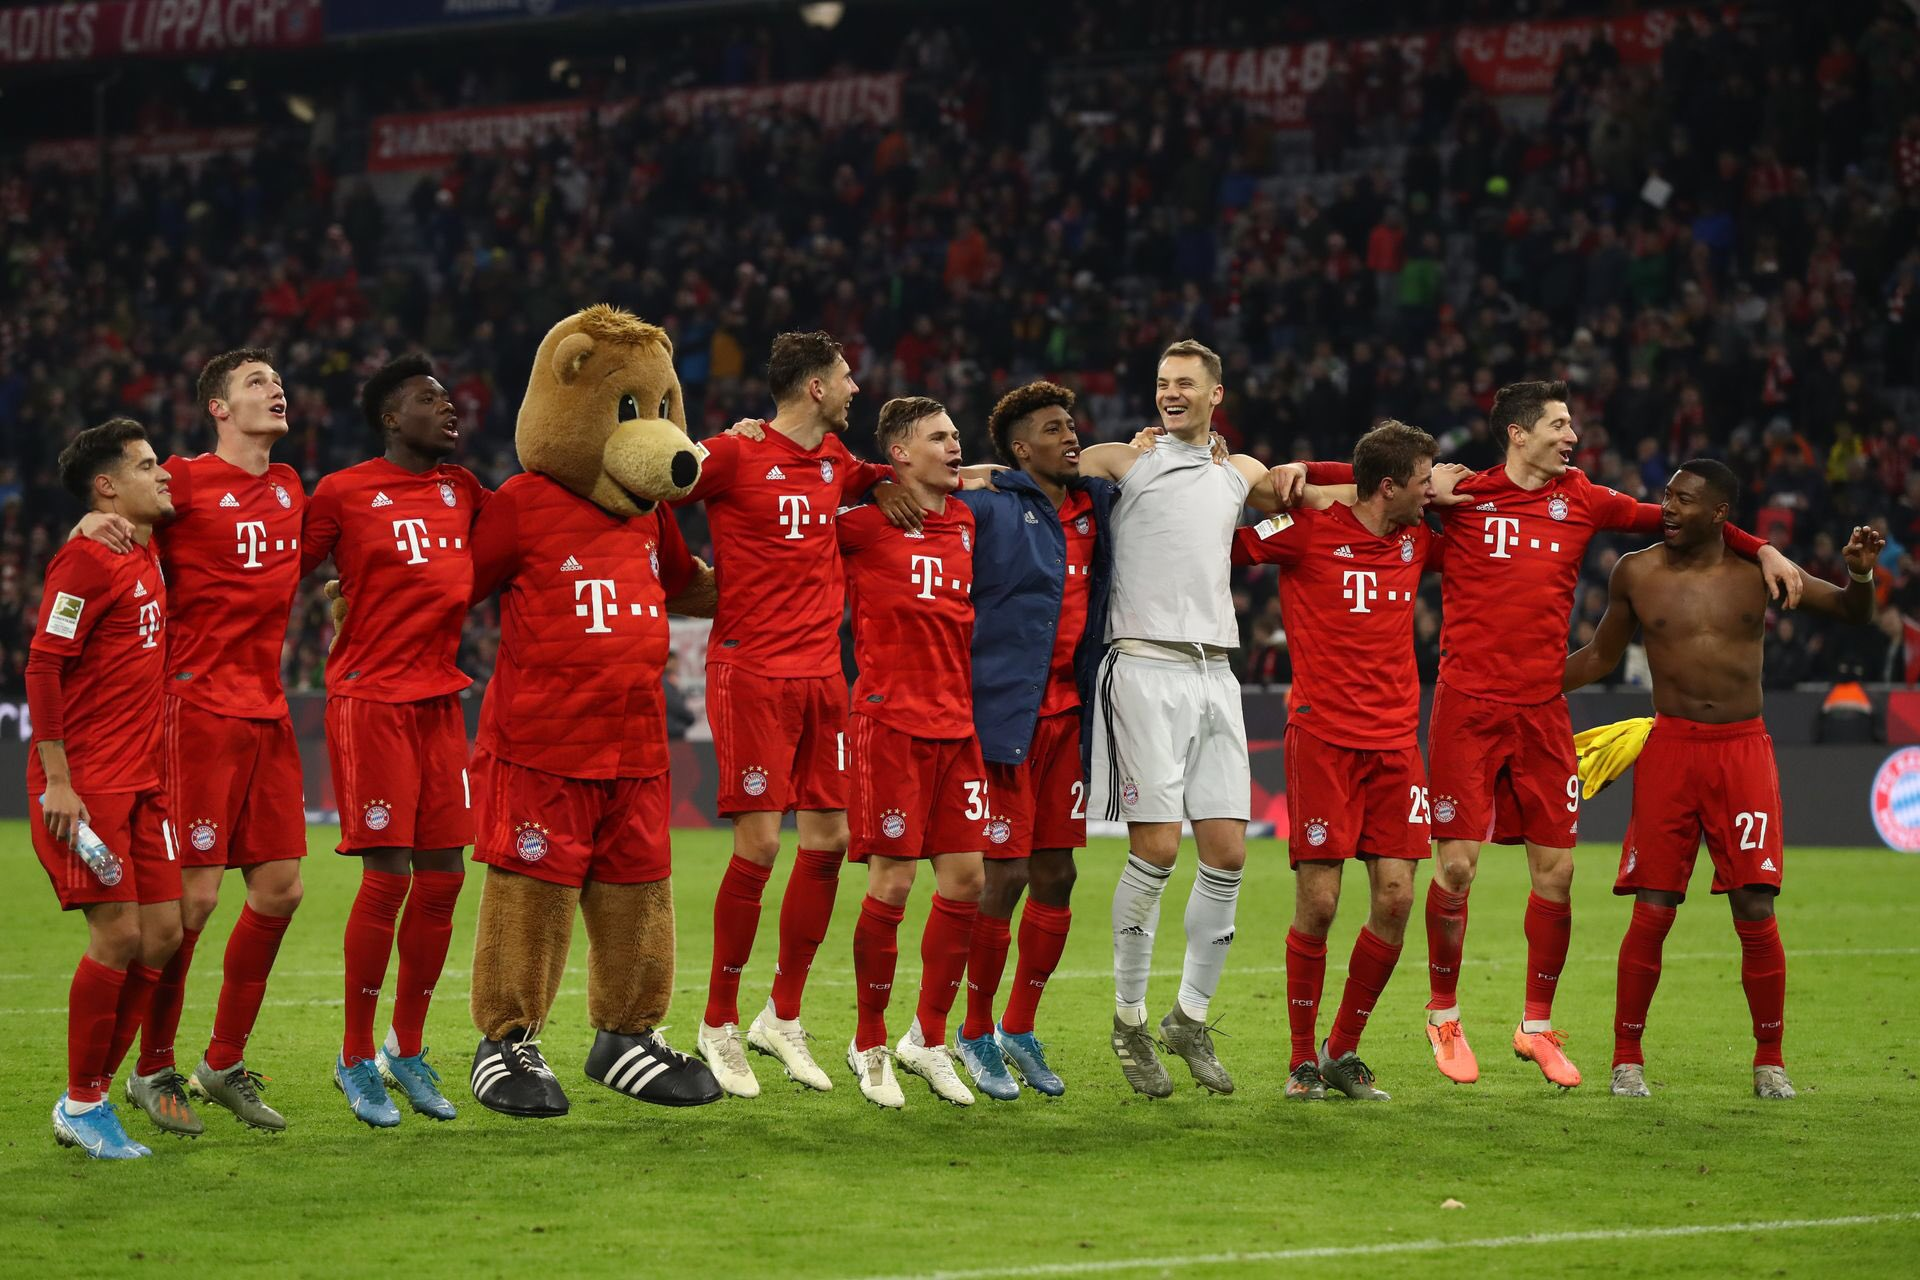 Bayern Munich's Guaranteed Title Win And Their Chances In The Champions League